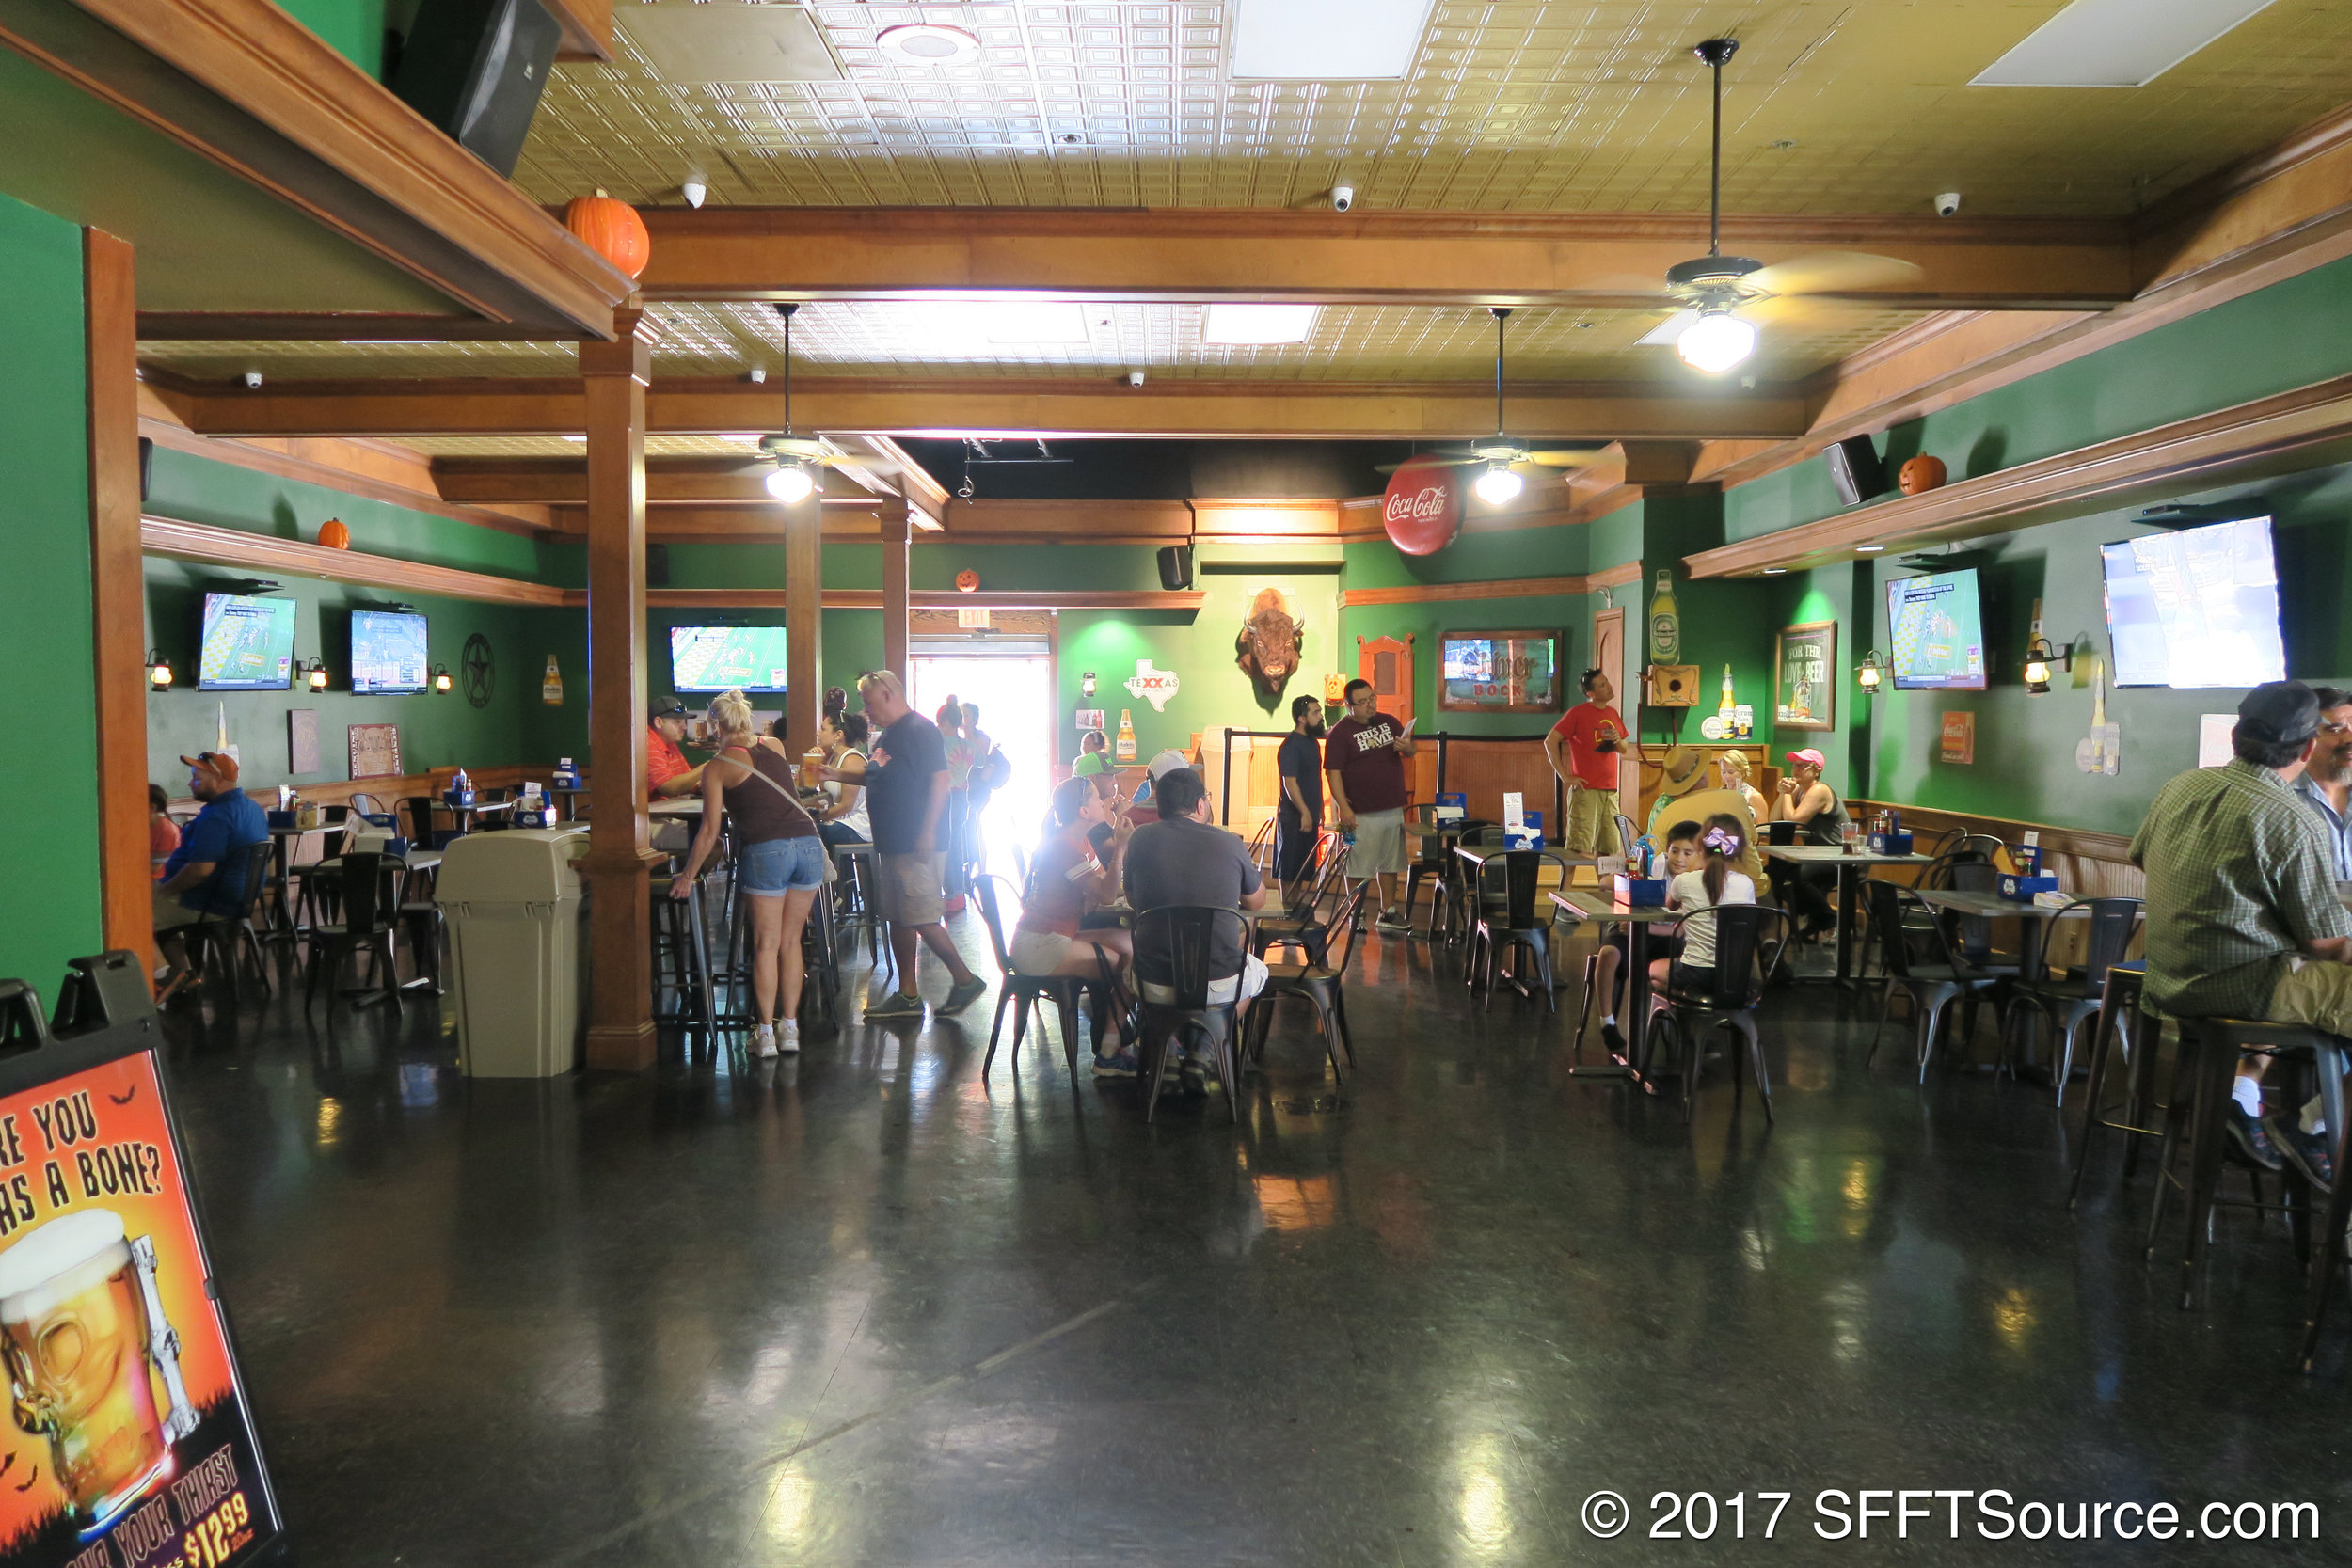 A look at the indoor seating area.